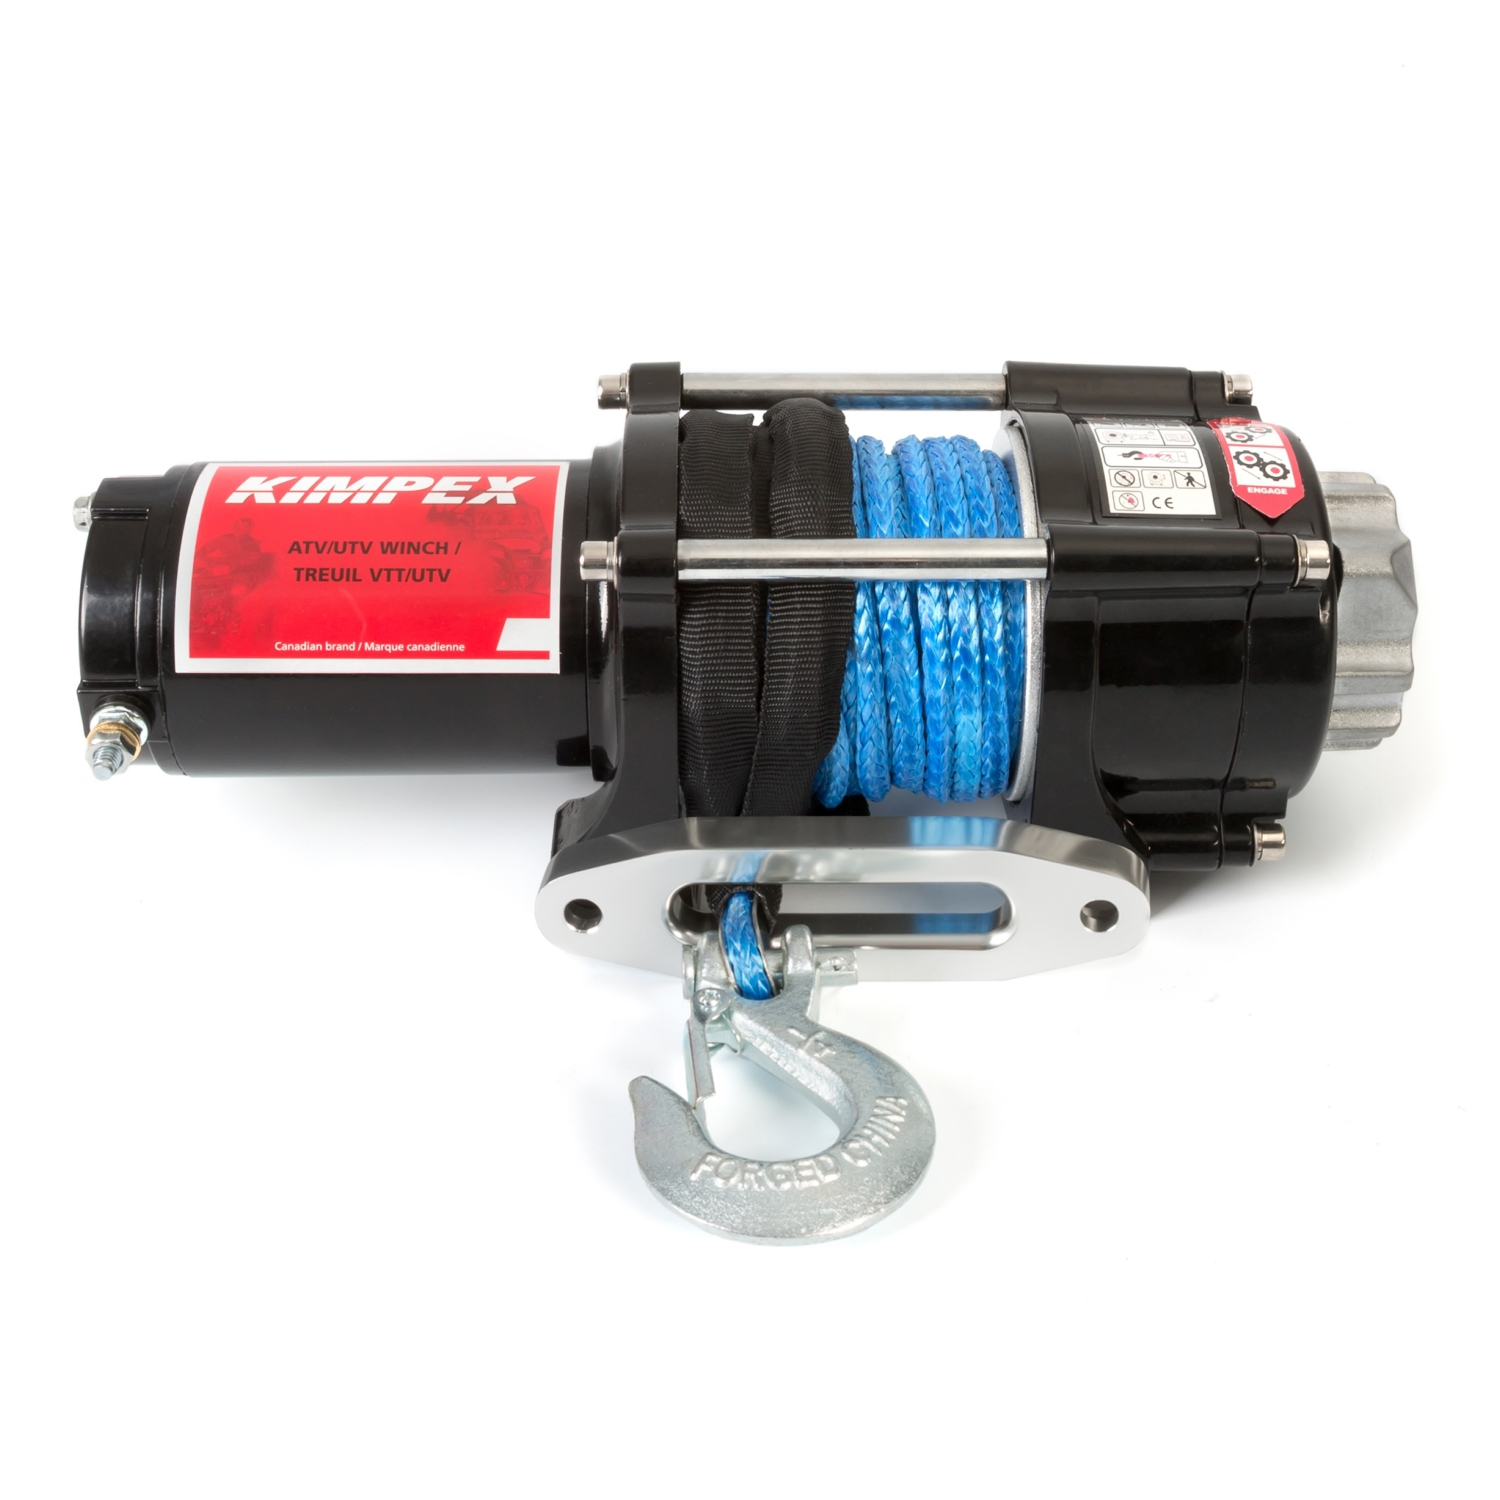 KIMPEX 2500 lbs Winch Kit with Synthetic Rope   #458243